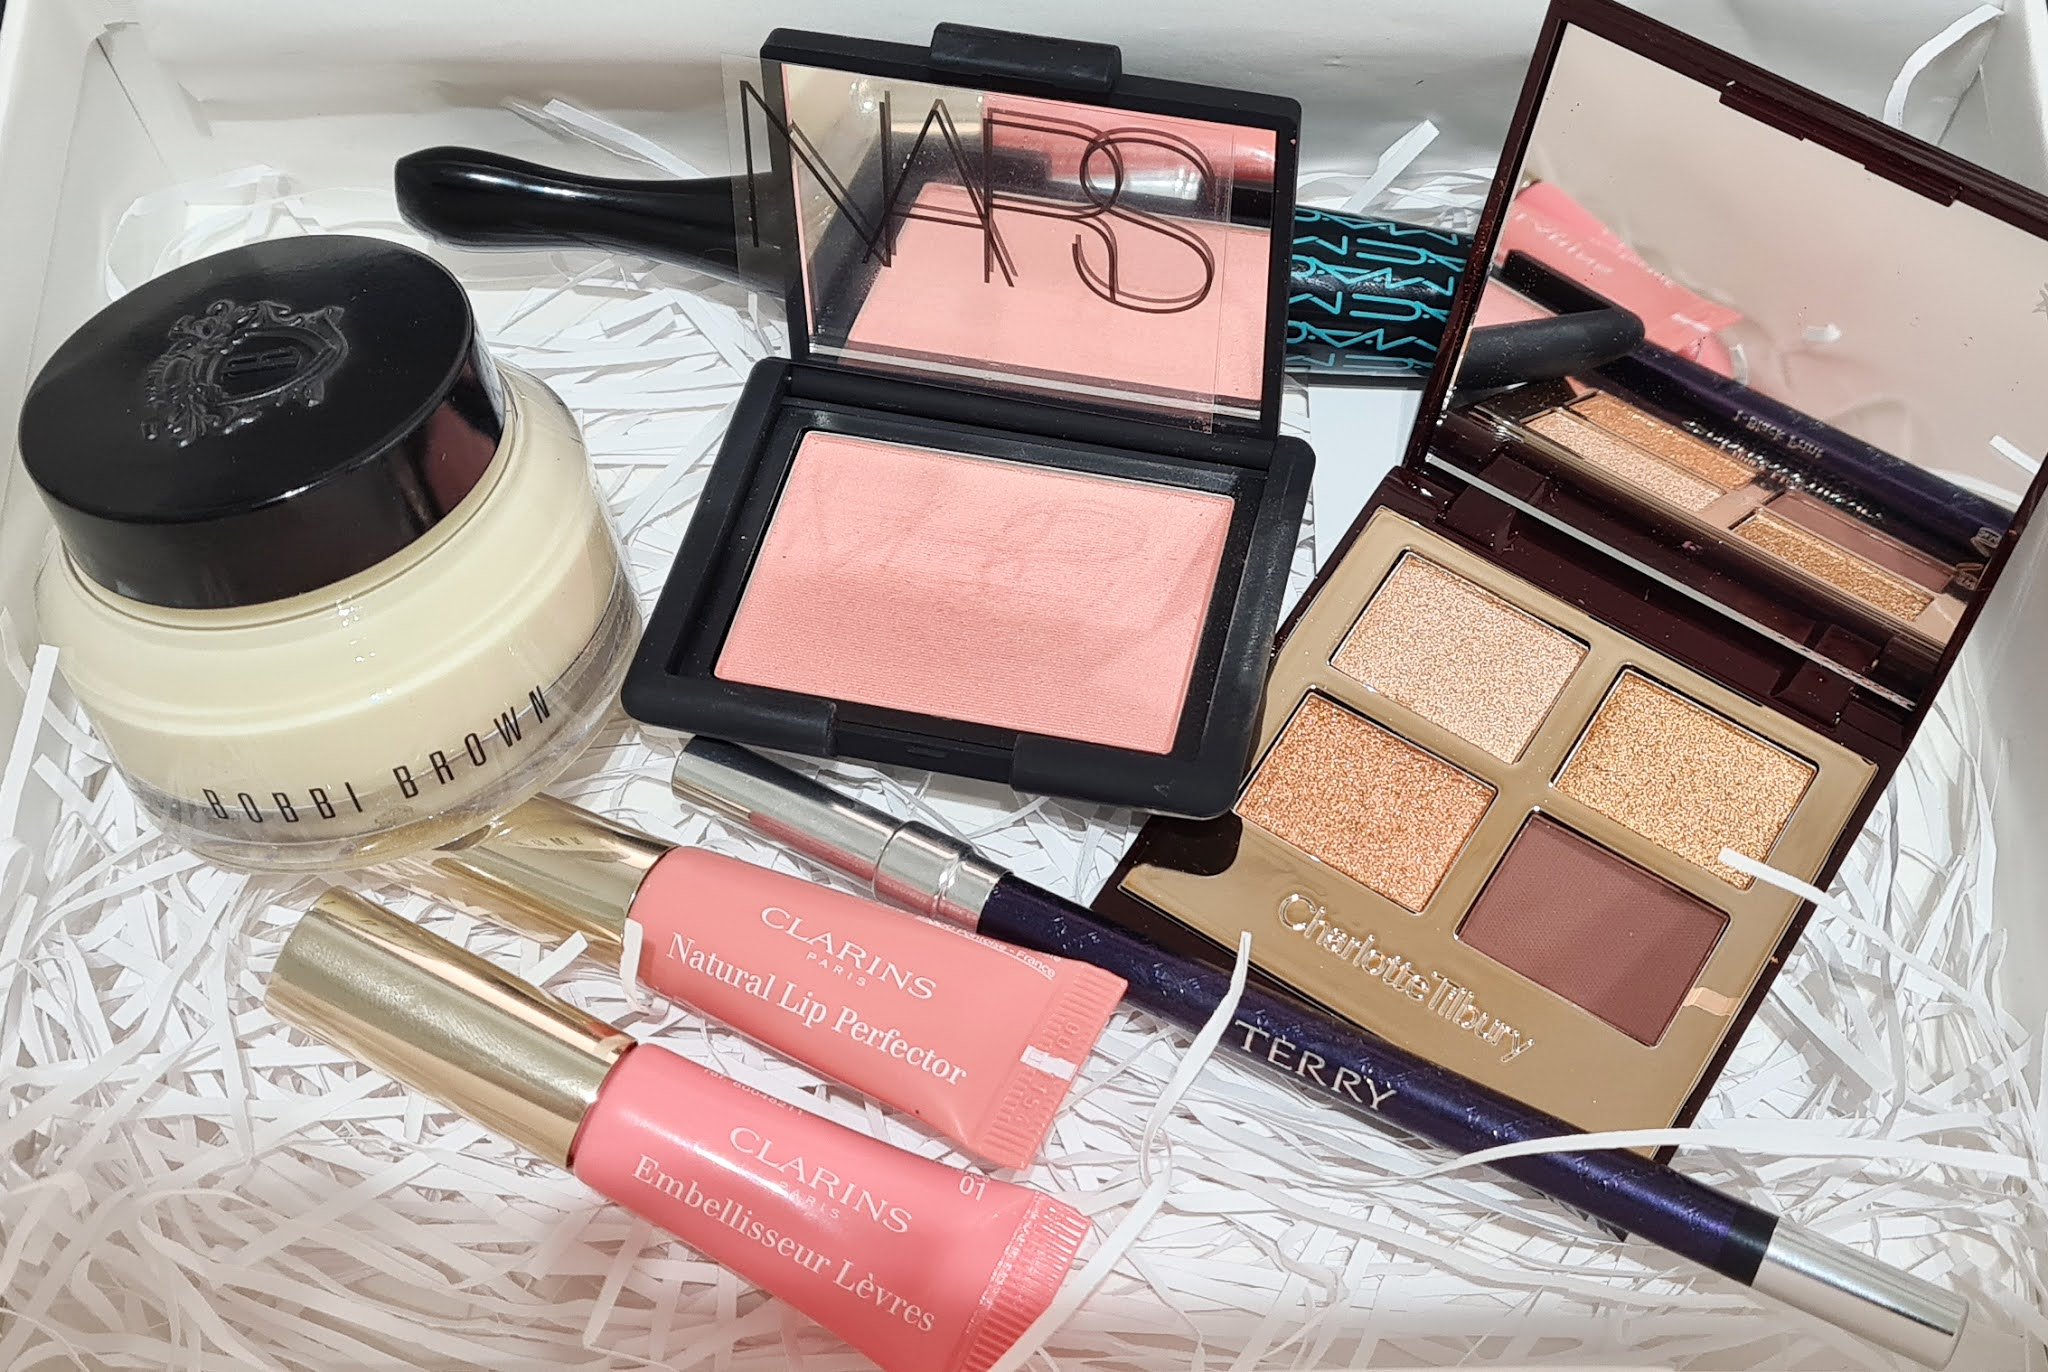 The contents of the My John Lewis x Hannah Martin beauty box